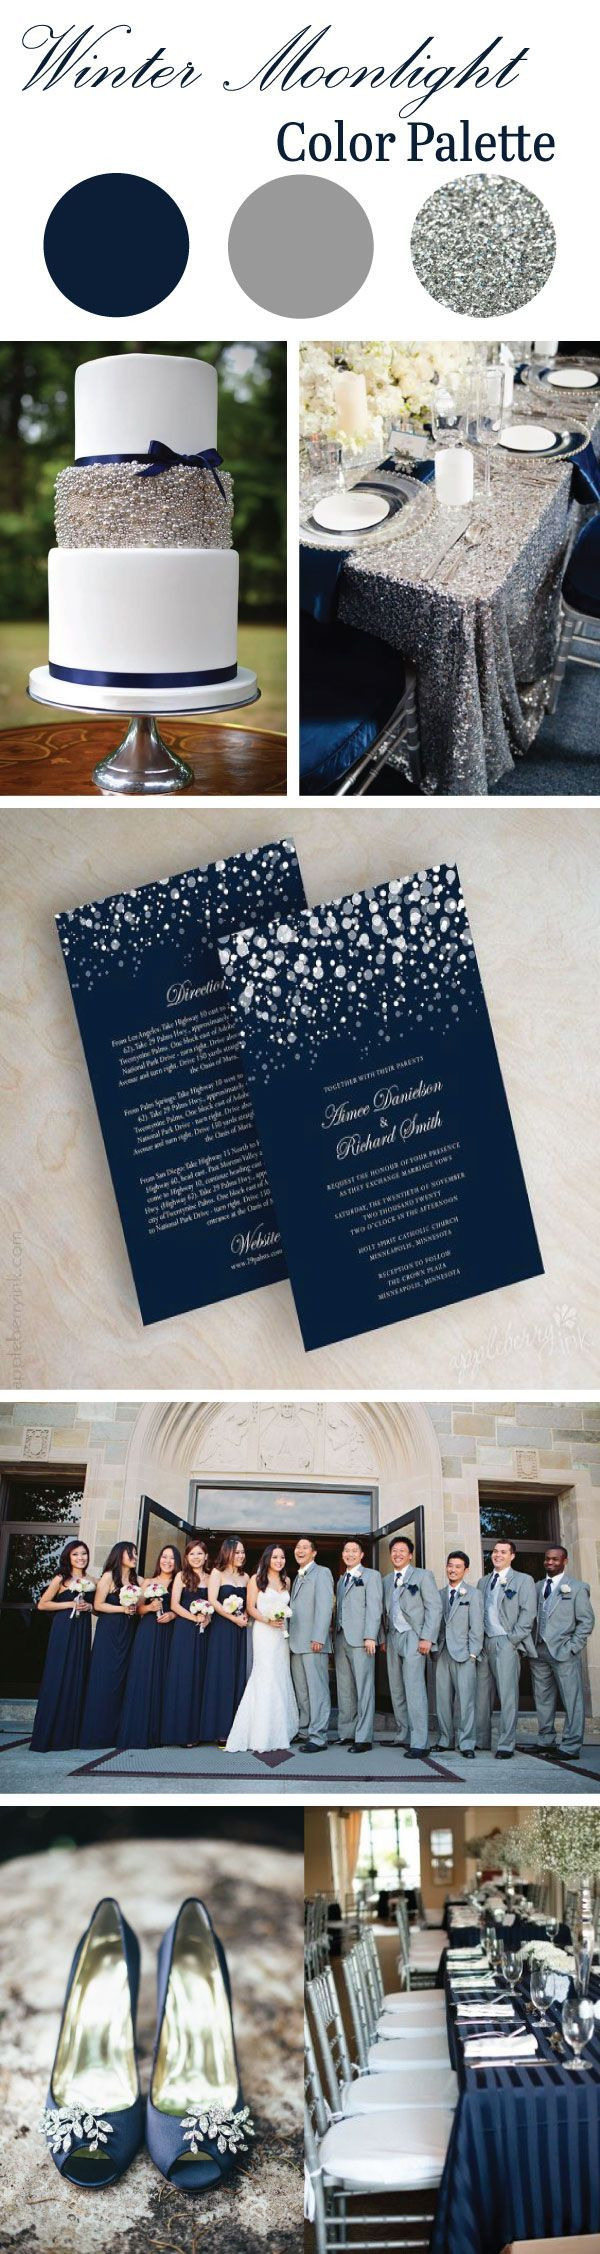 59 Best Under The Stars Wedding Images On Pinterest Weddings Moon